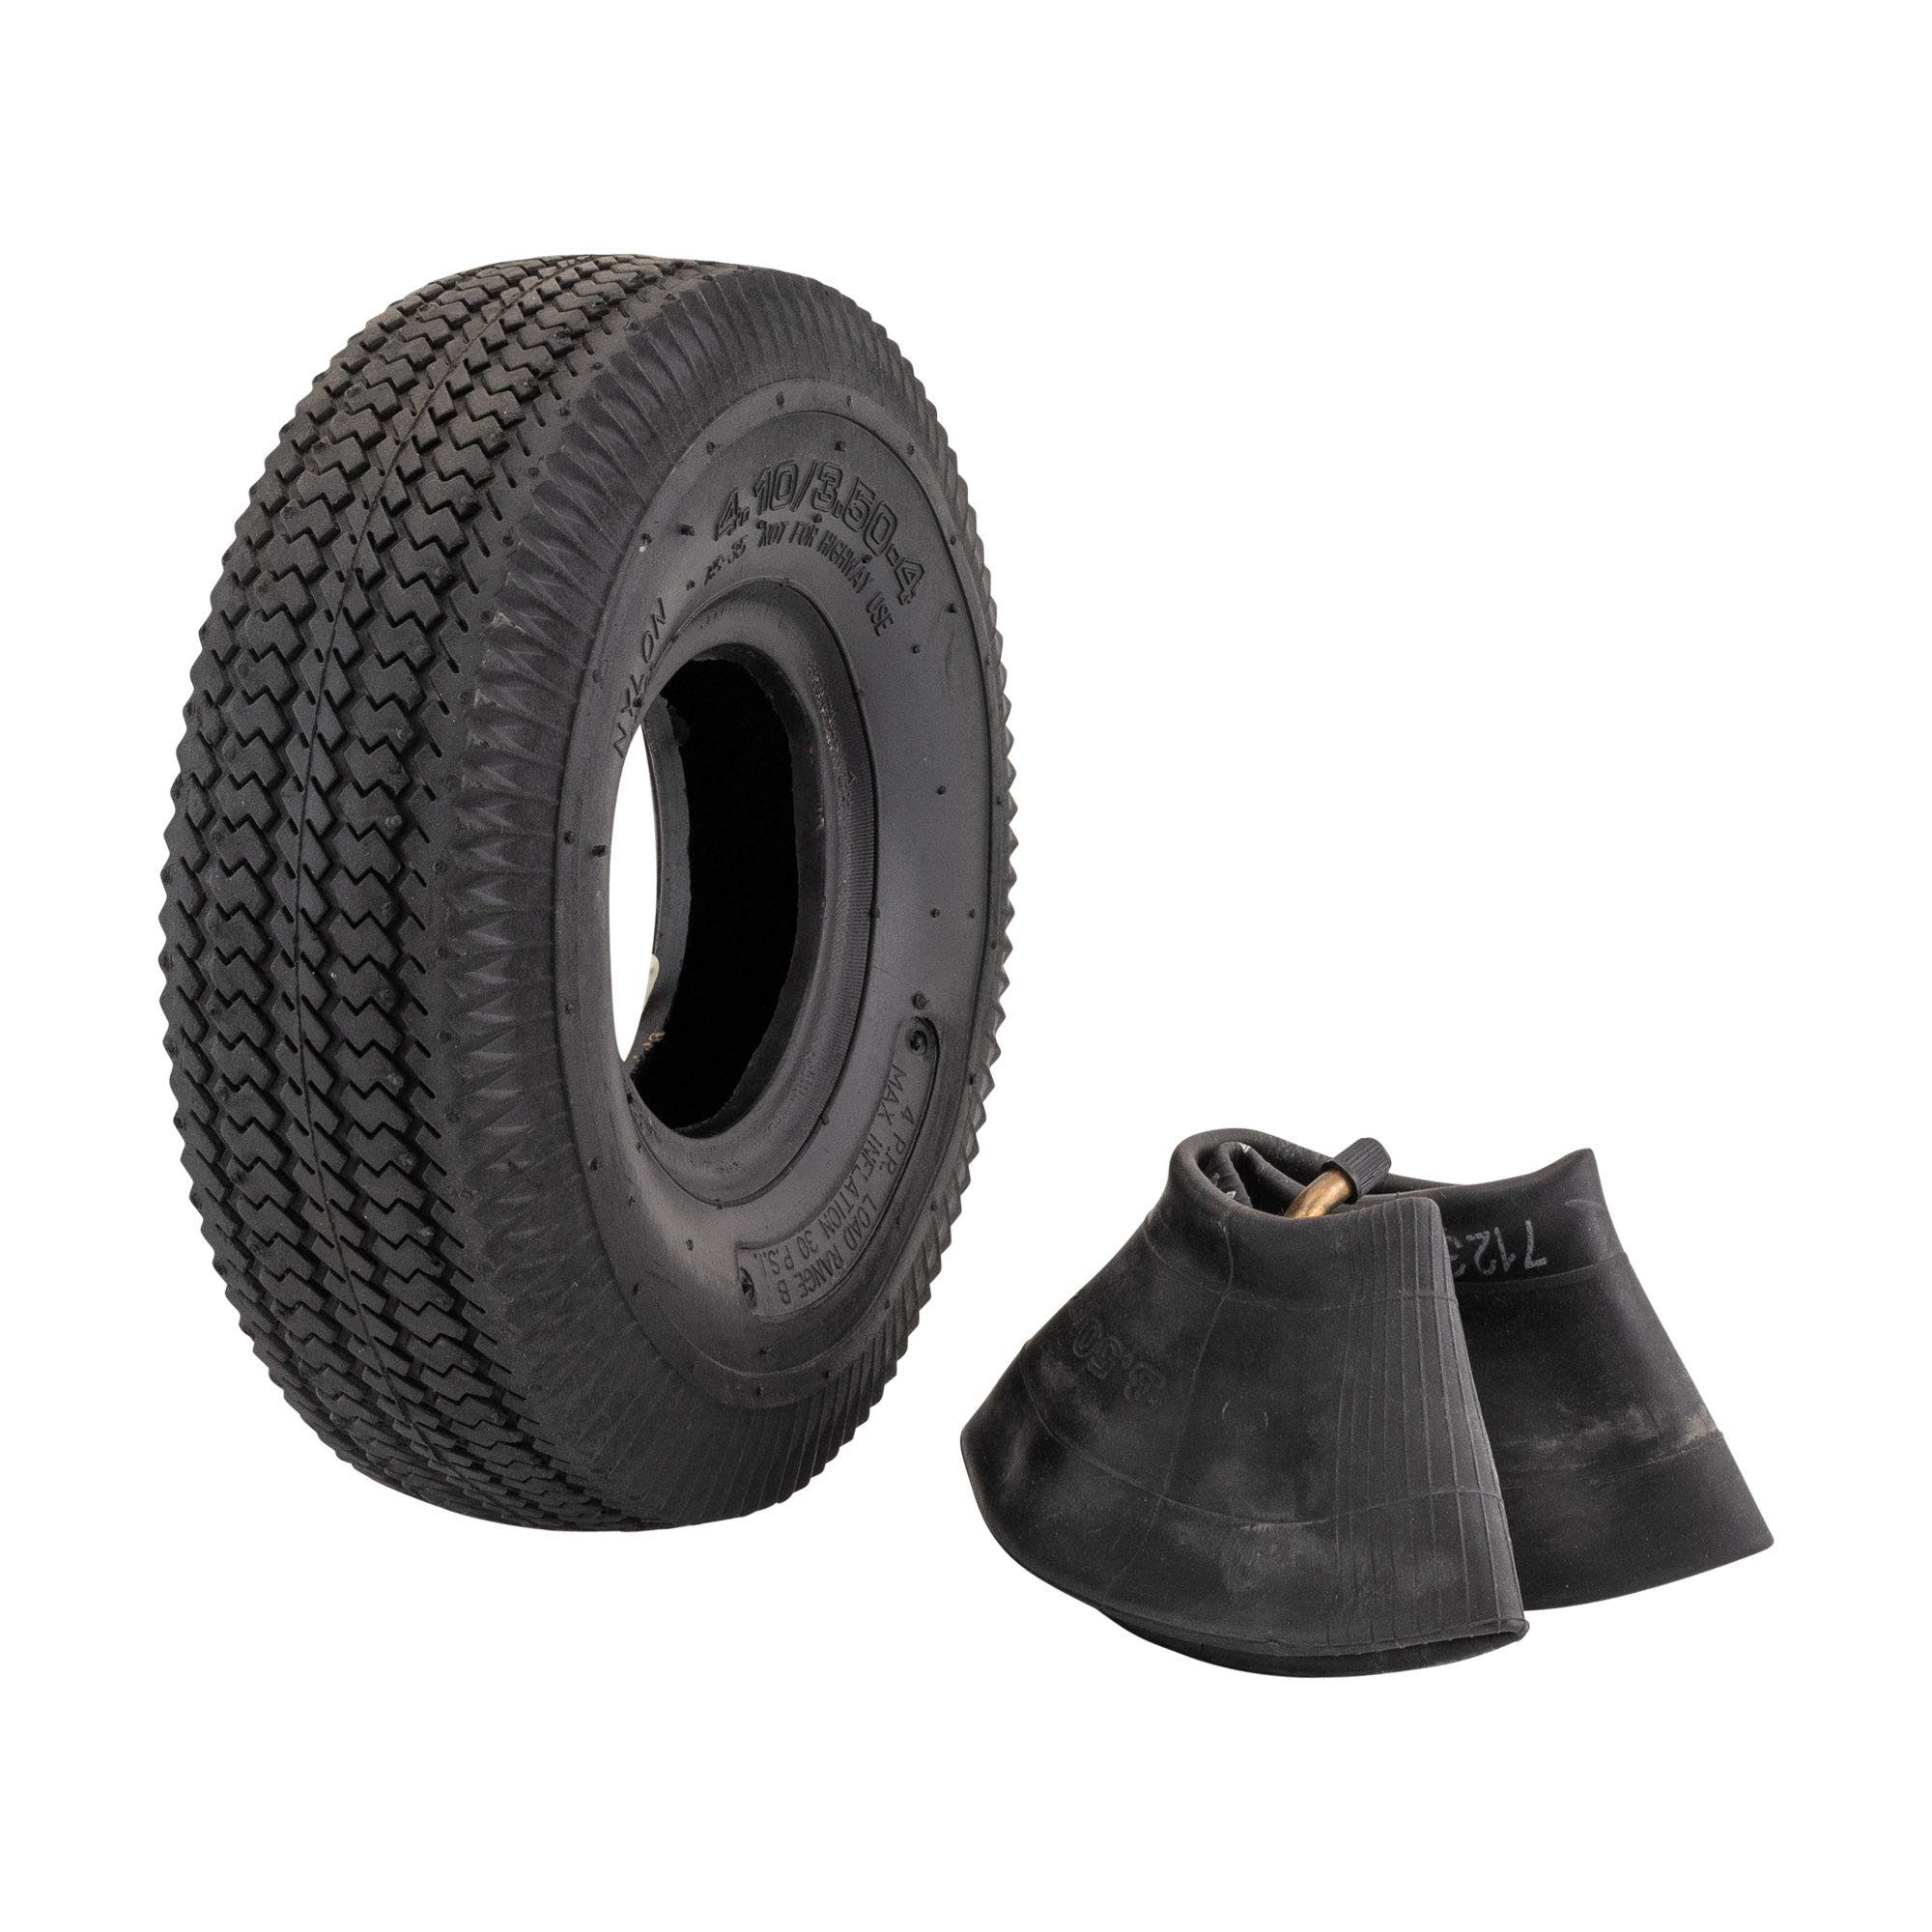 Marathon 4.10/3.50-4'' Pneumatic (Air Filled) Hand Truck / All Purpose Utility Tire and Inner Tube by Marathon Industries